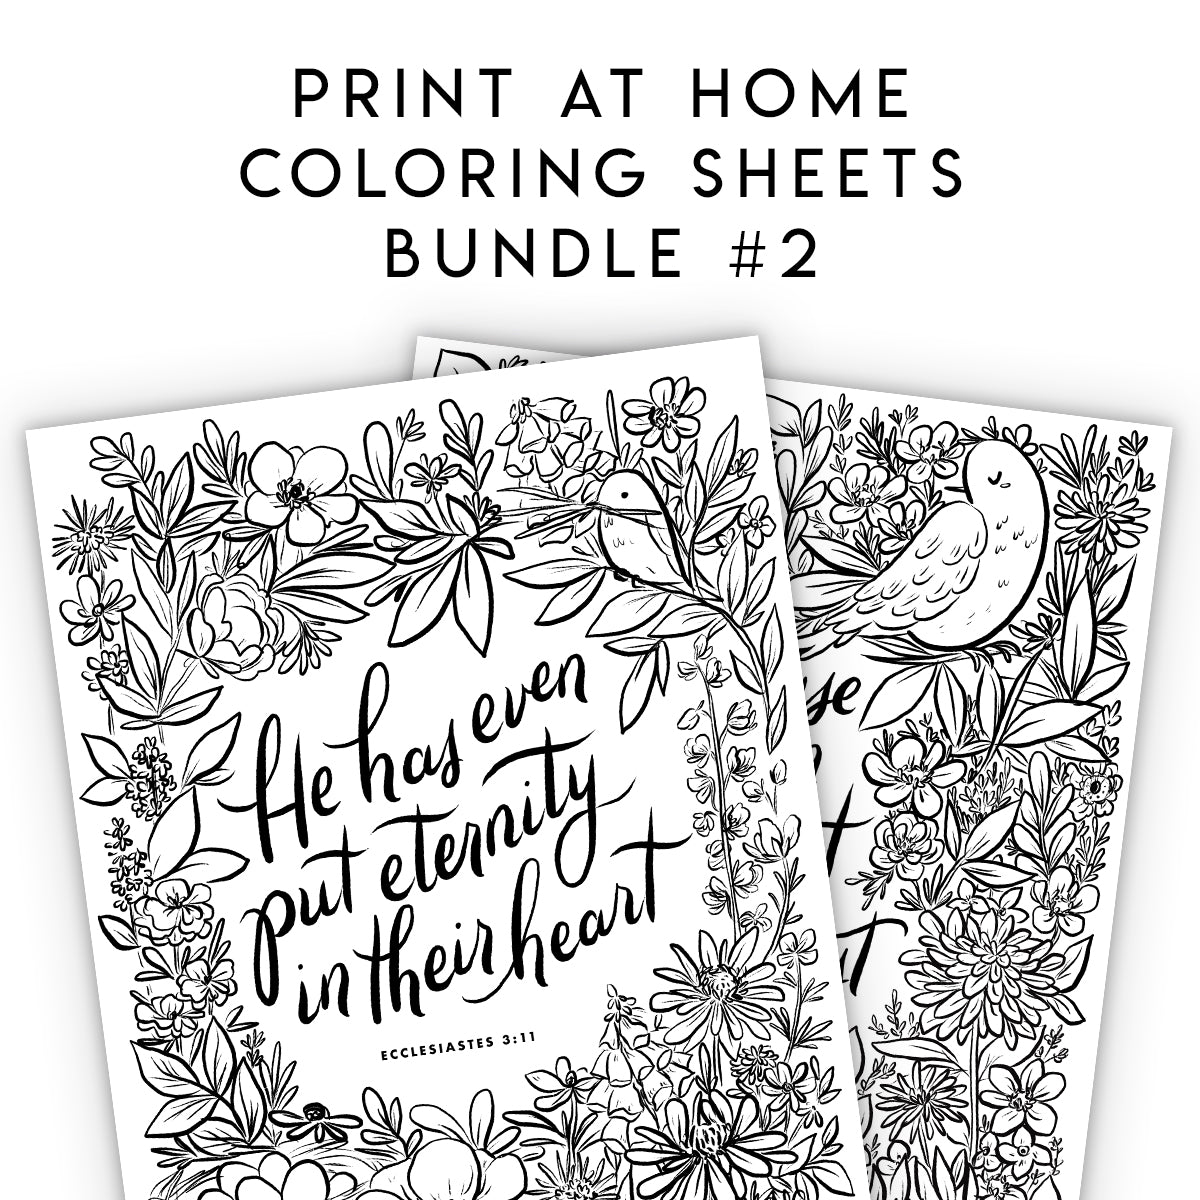 Print At Home Coloring Sheets - BUNDLE 2